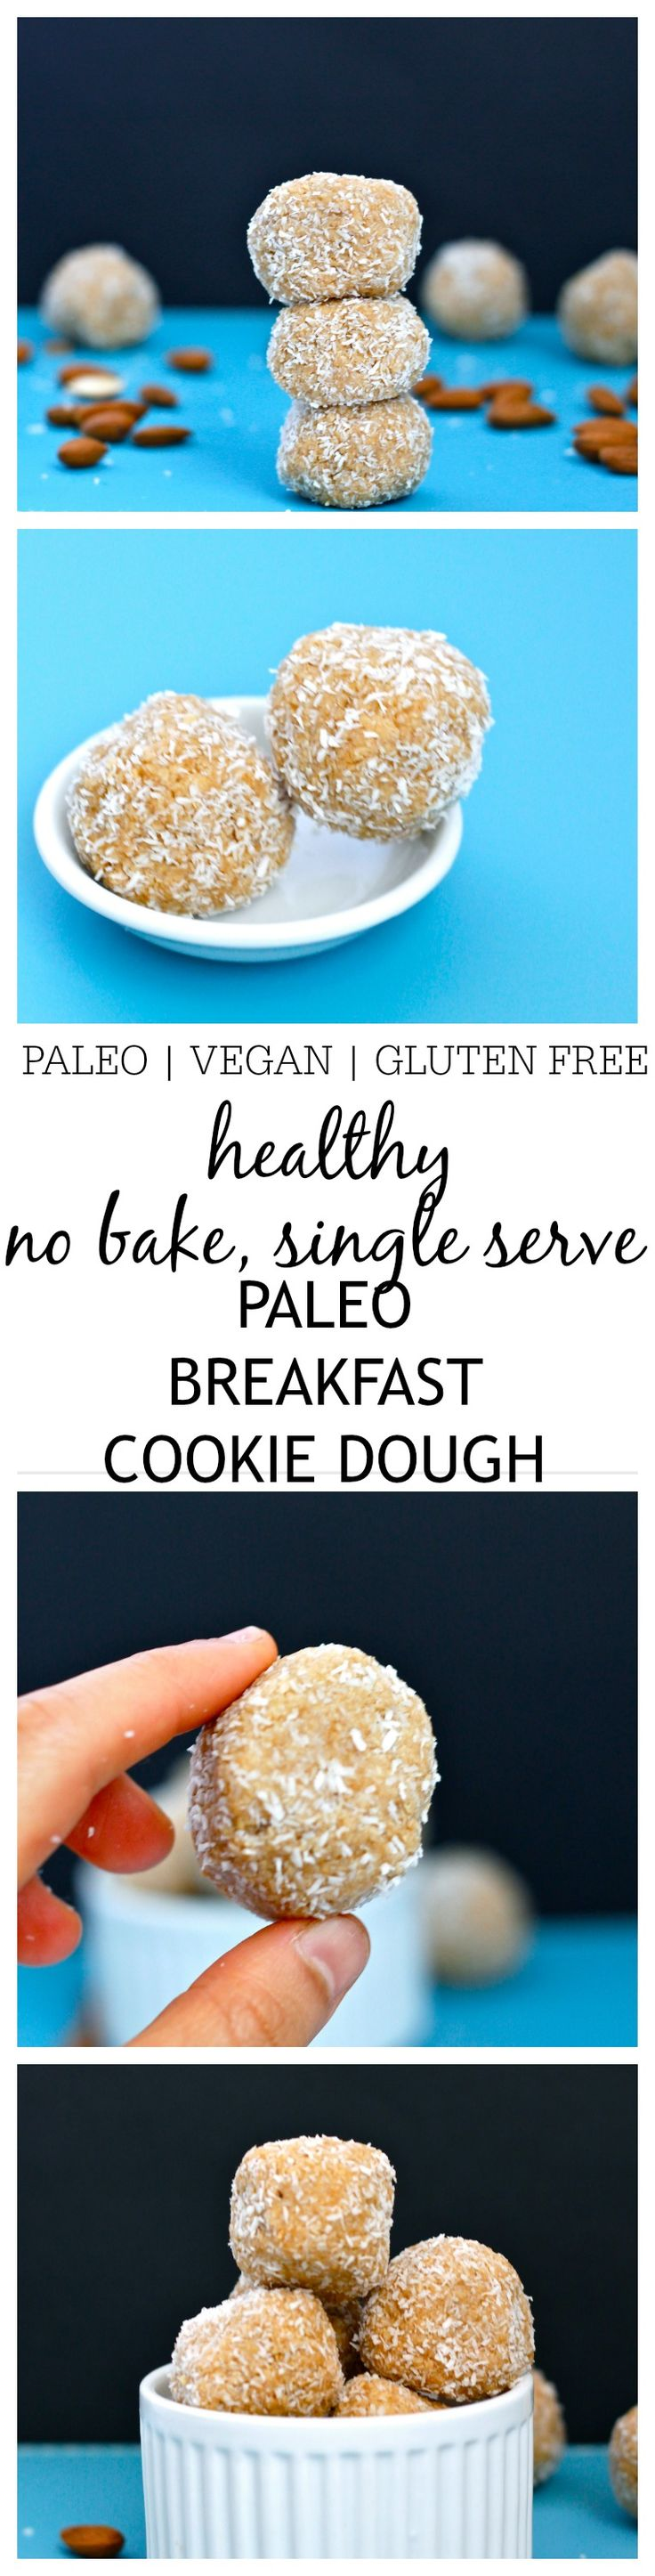 {No Bake} Paleo Breakfast Cookie Dough- This delicious, no bake paleo breakfast cookie dough is perfect for a grab and go breakfast and ready in 5 minutes!